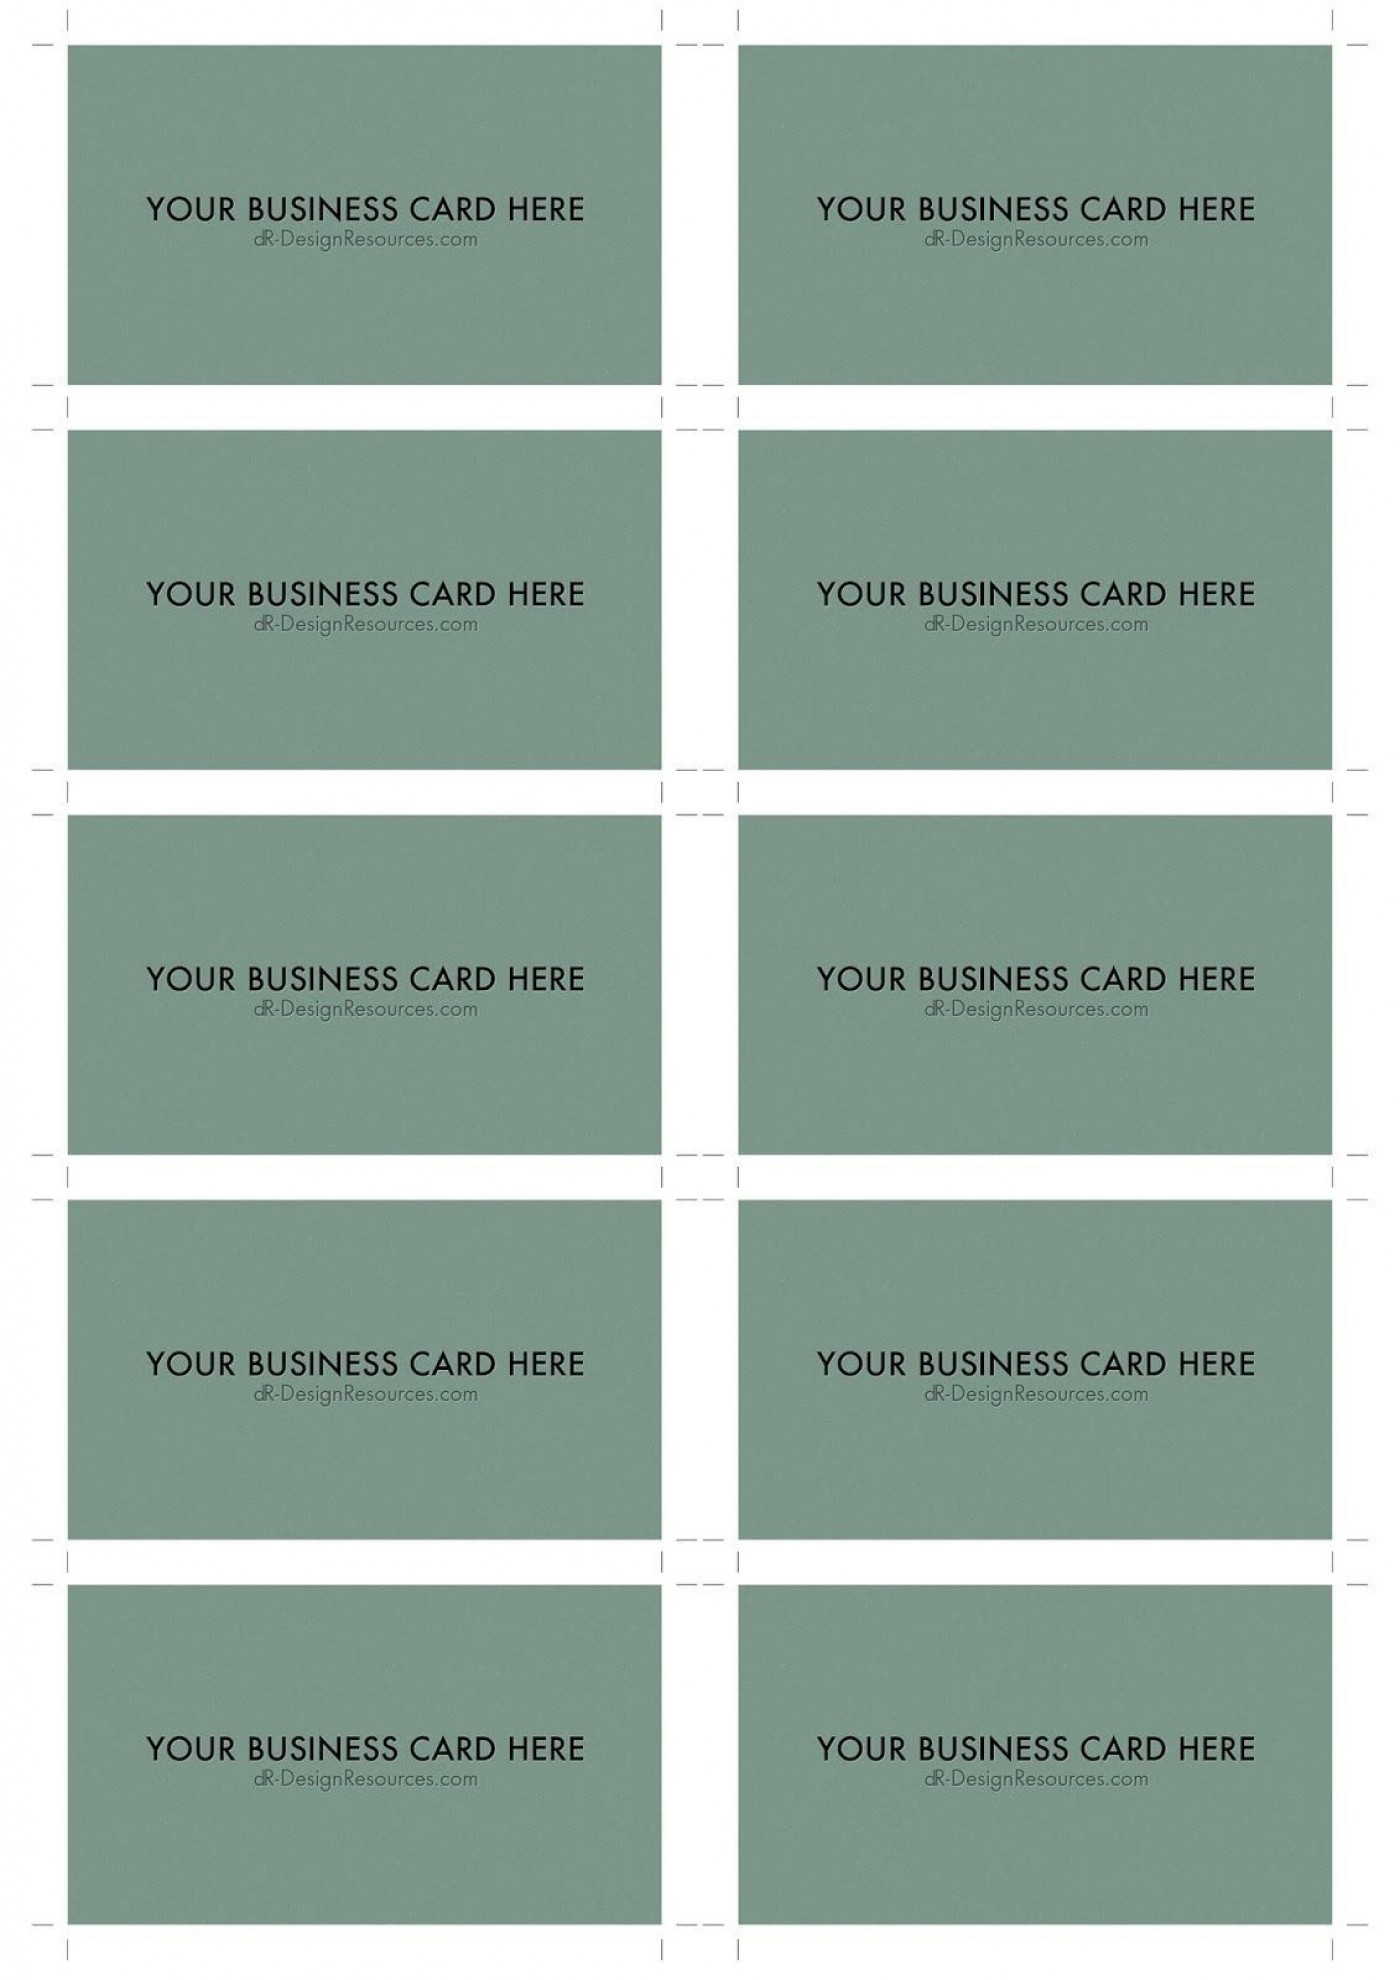 000 Surprising Blank Busines Card Template Photoshop Inspiration  Free Download Psd1400